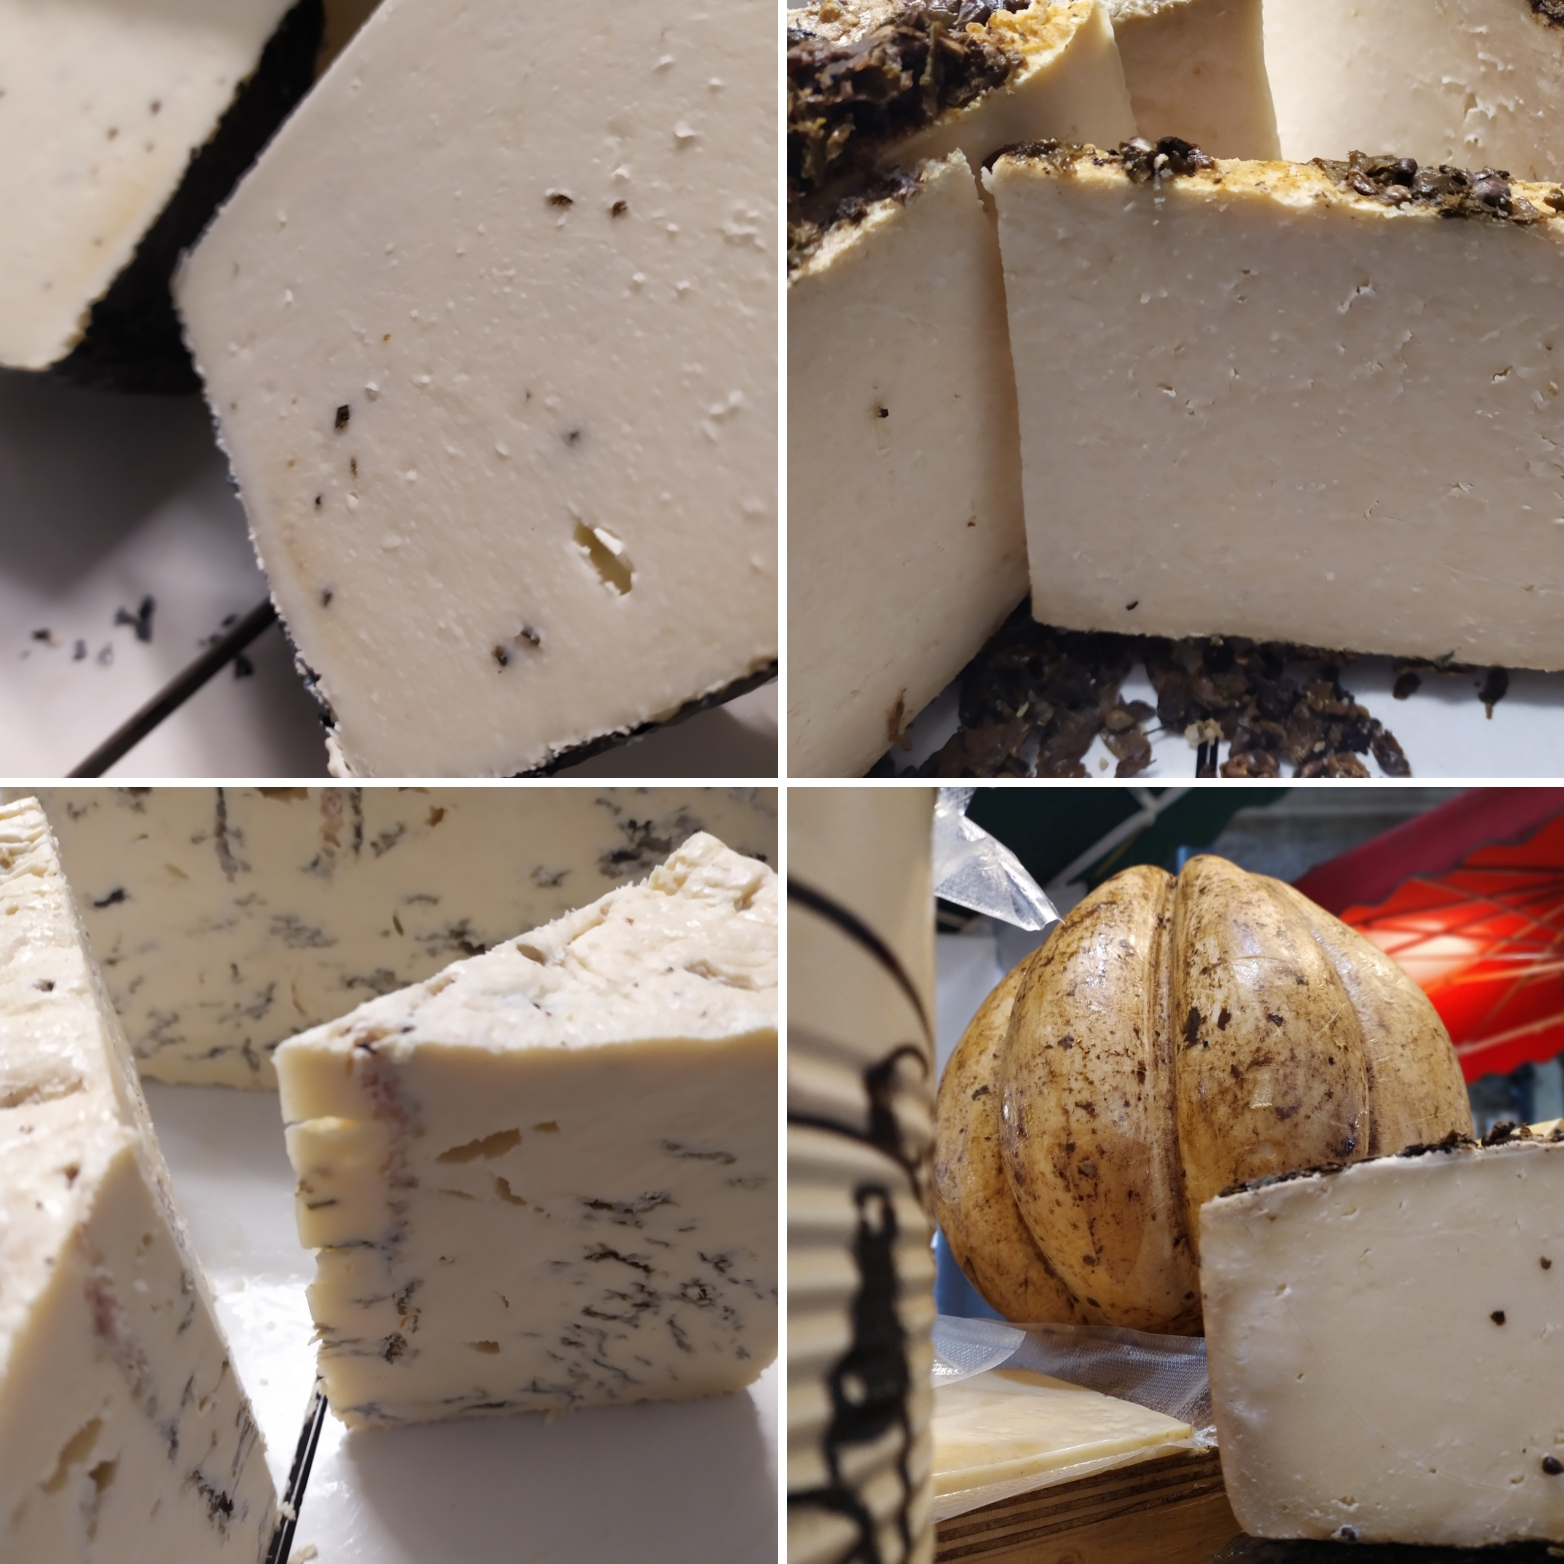 Aromatic selection of cheeses